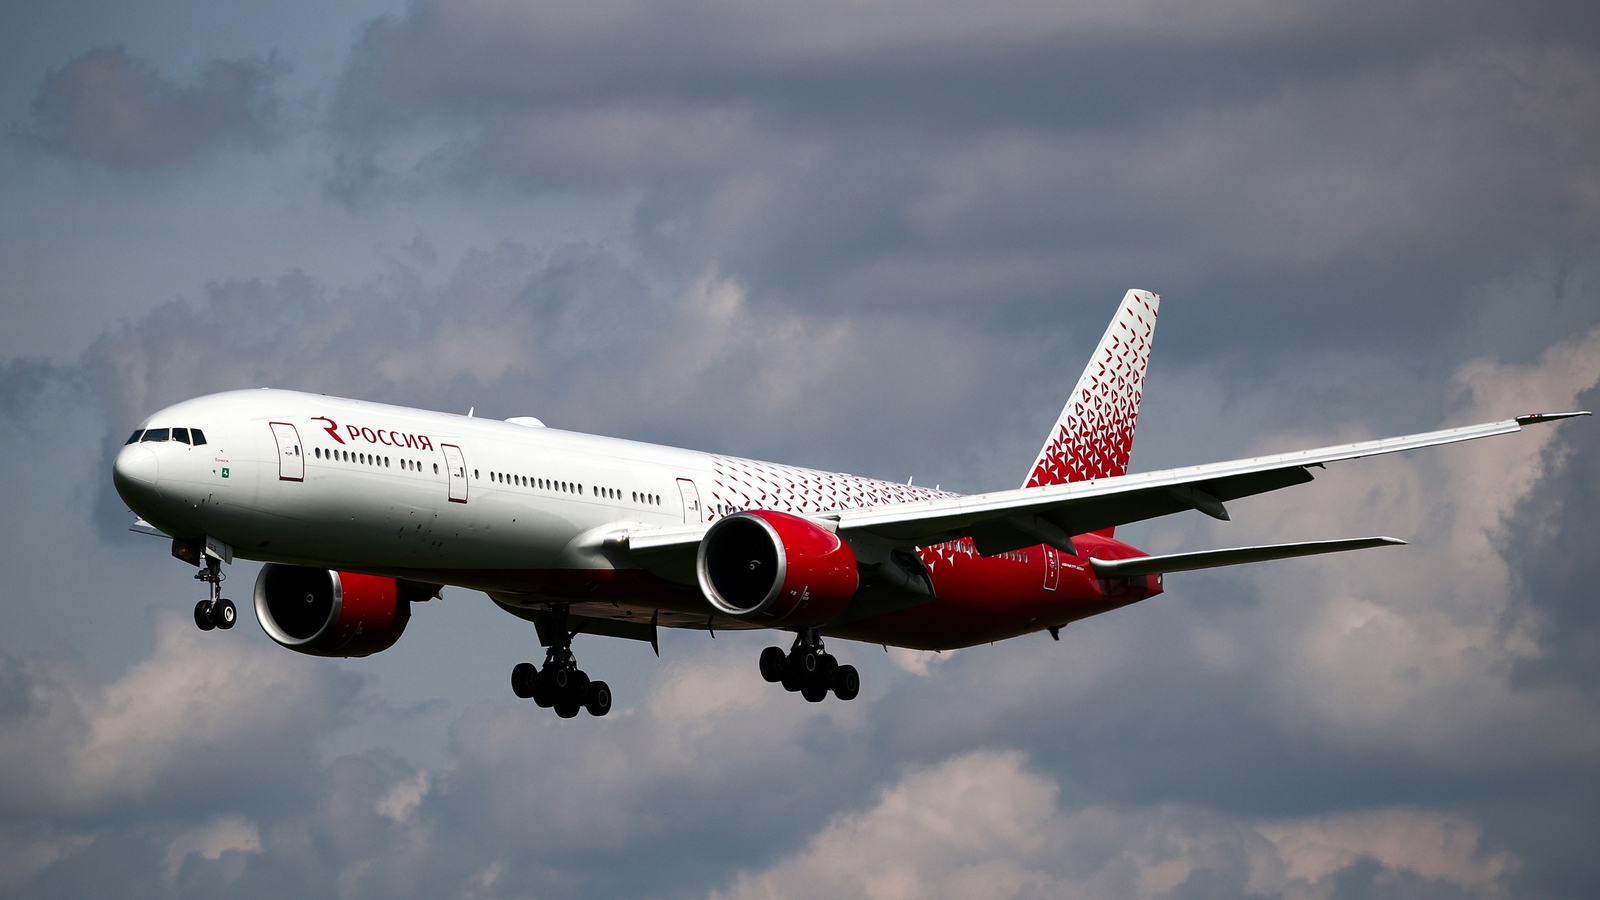 Boeing 777 with engine trouble makes emergency landing